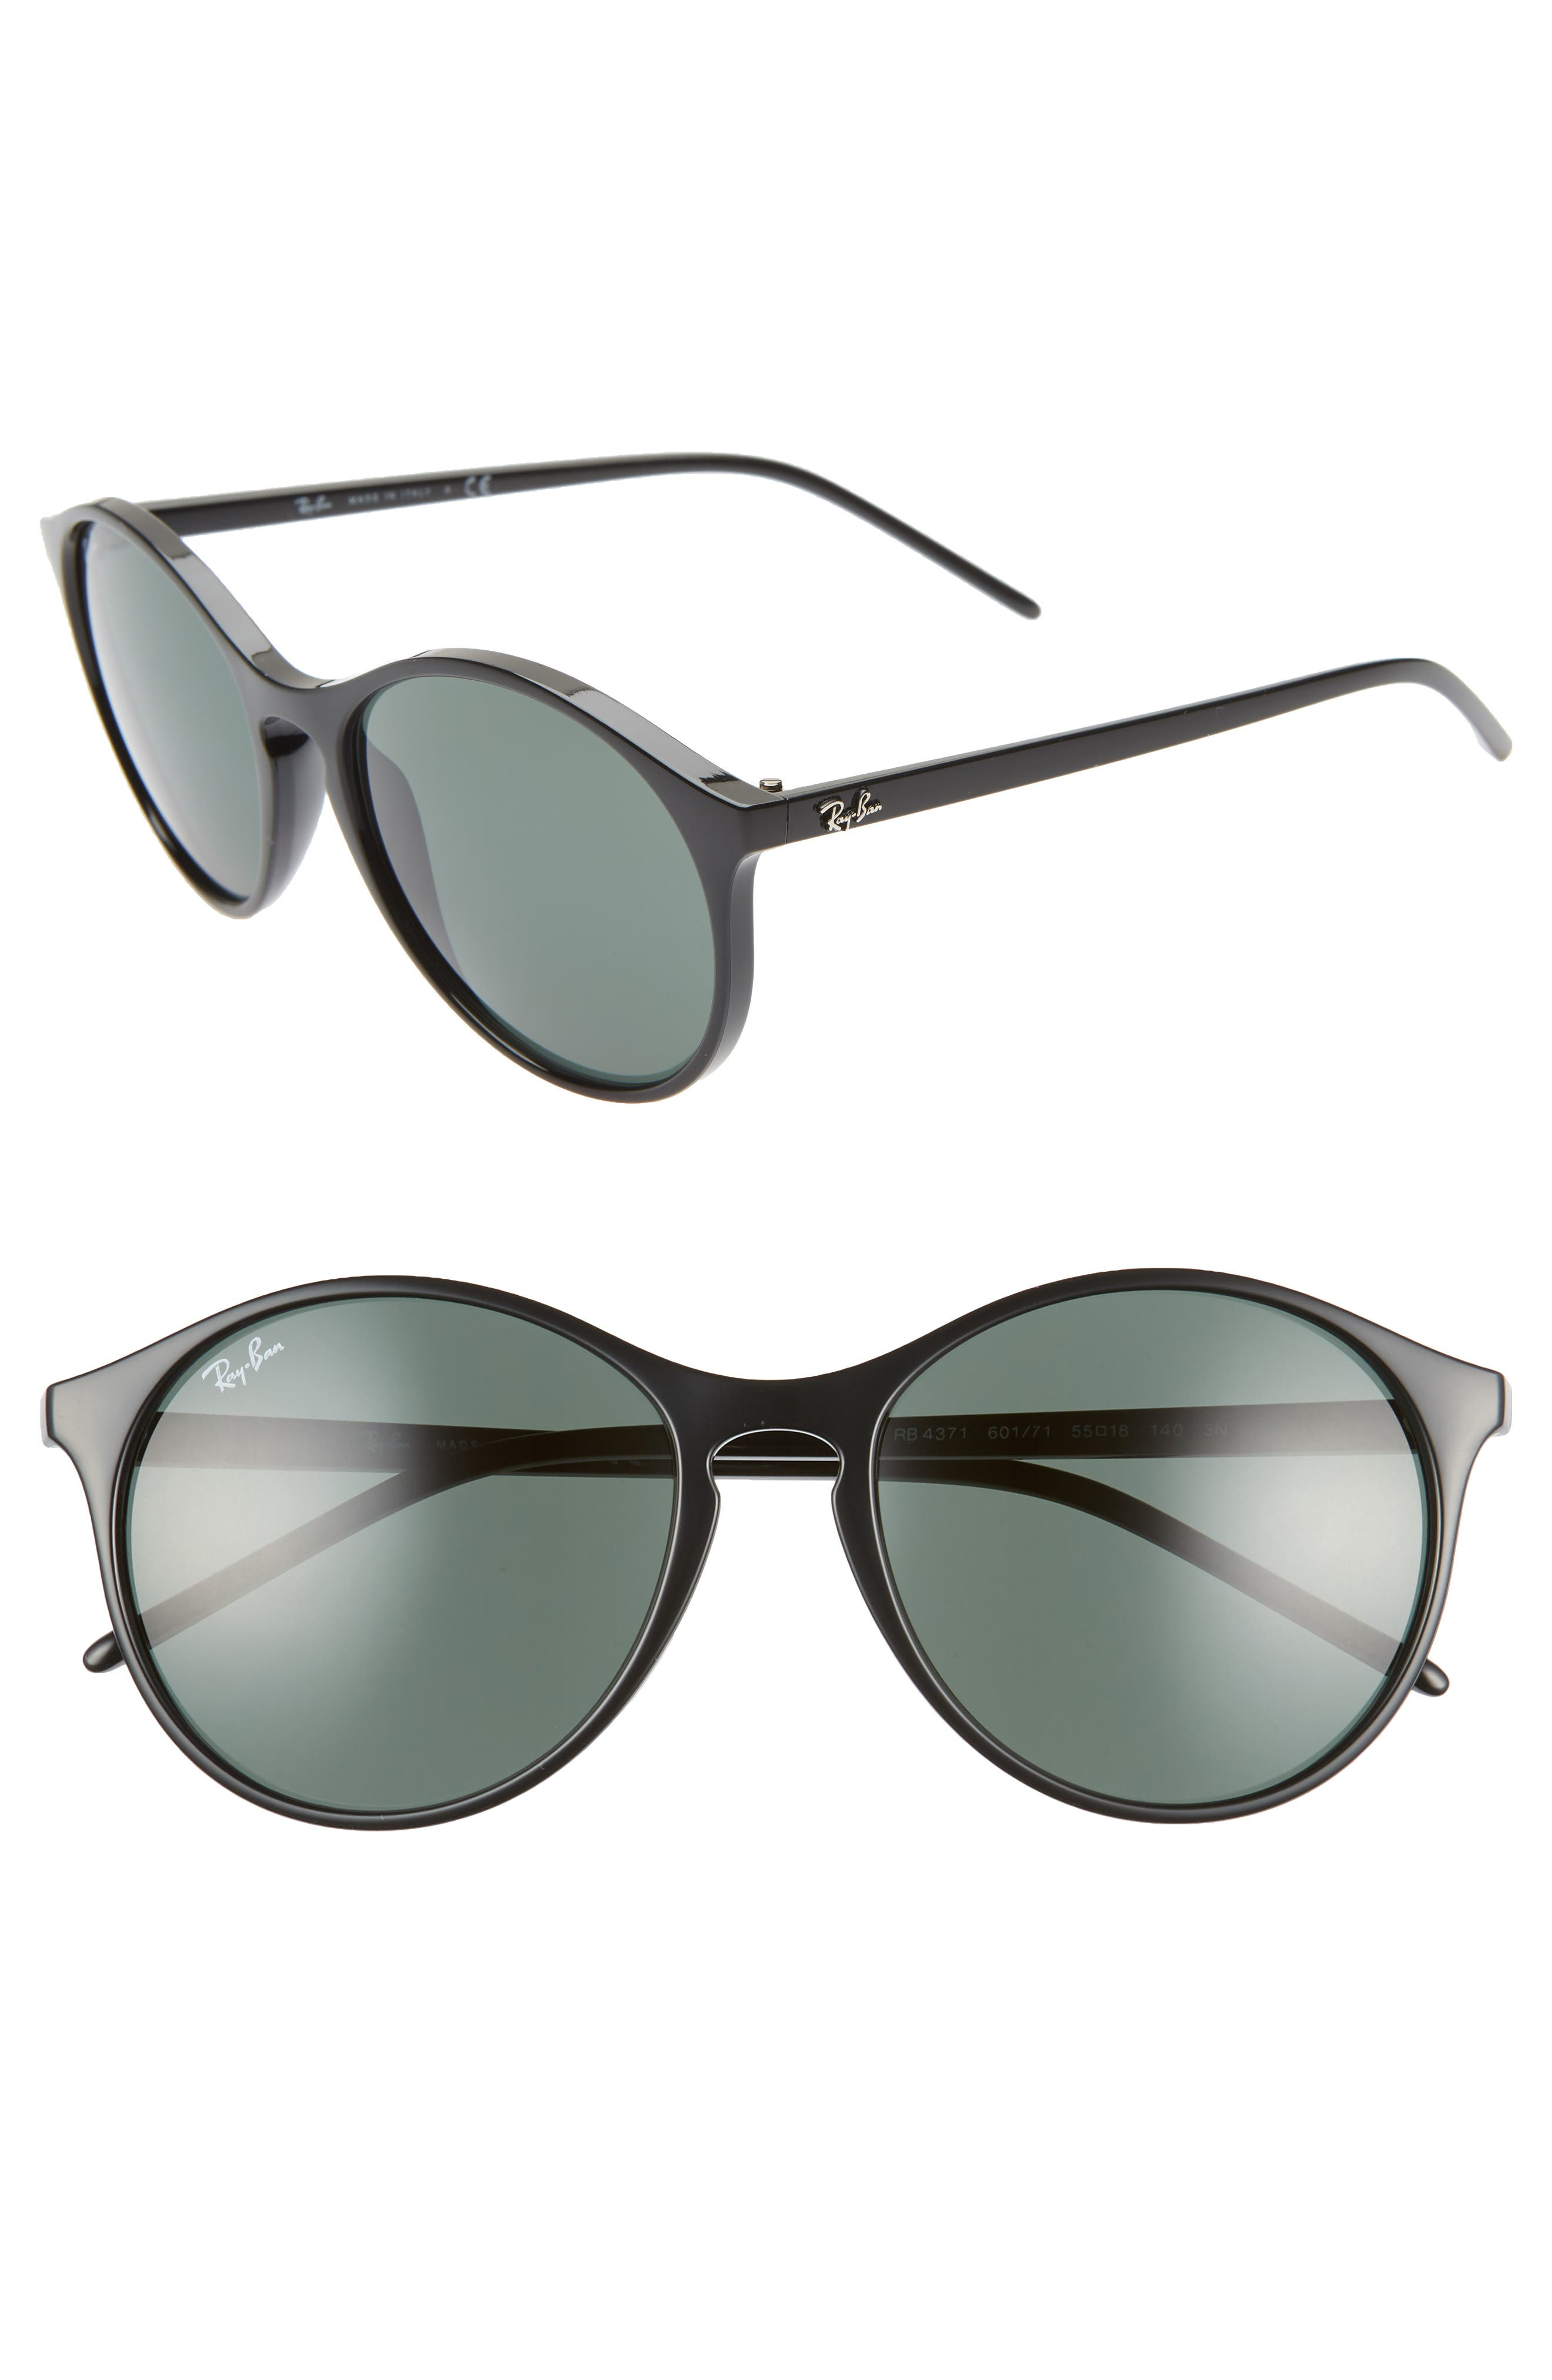 Ray-Ban Highstreet 55Mm Round Sunglasses - Black/ Green Solid